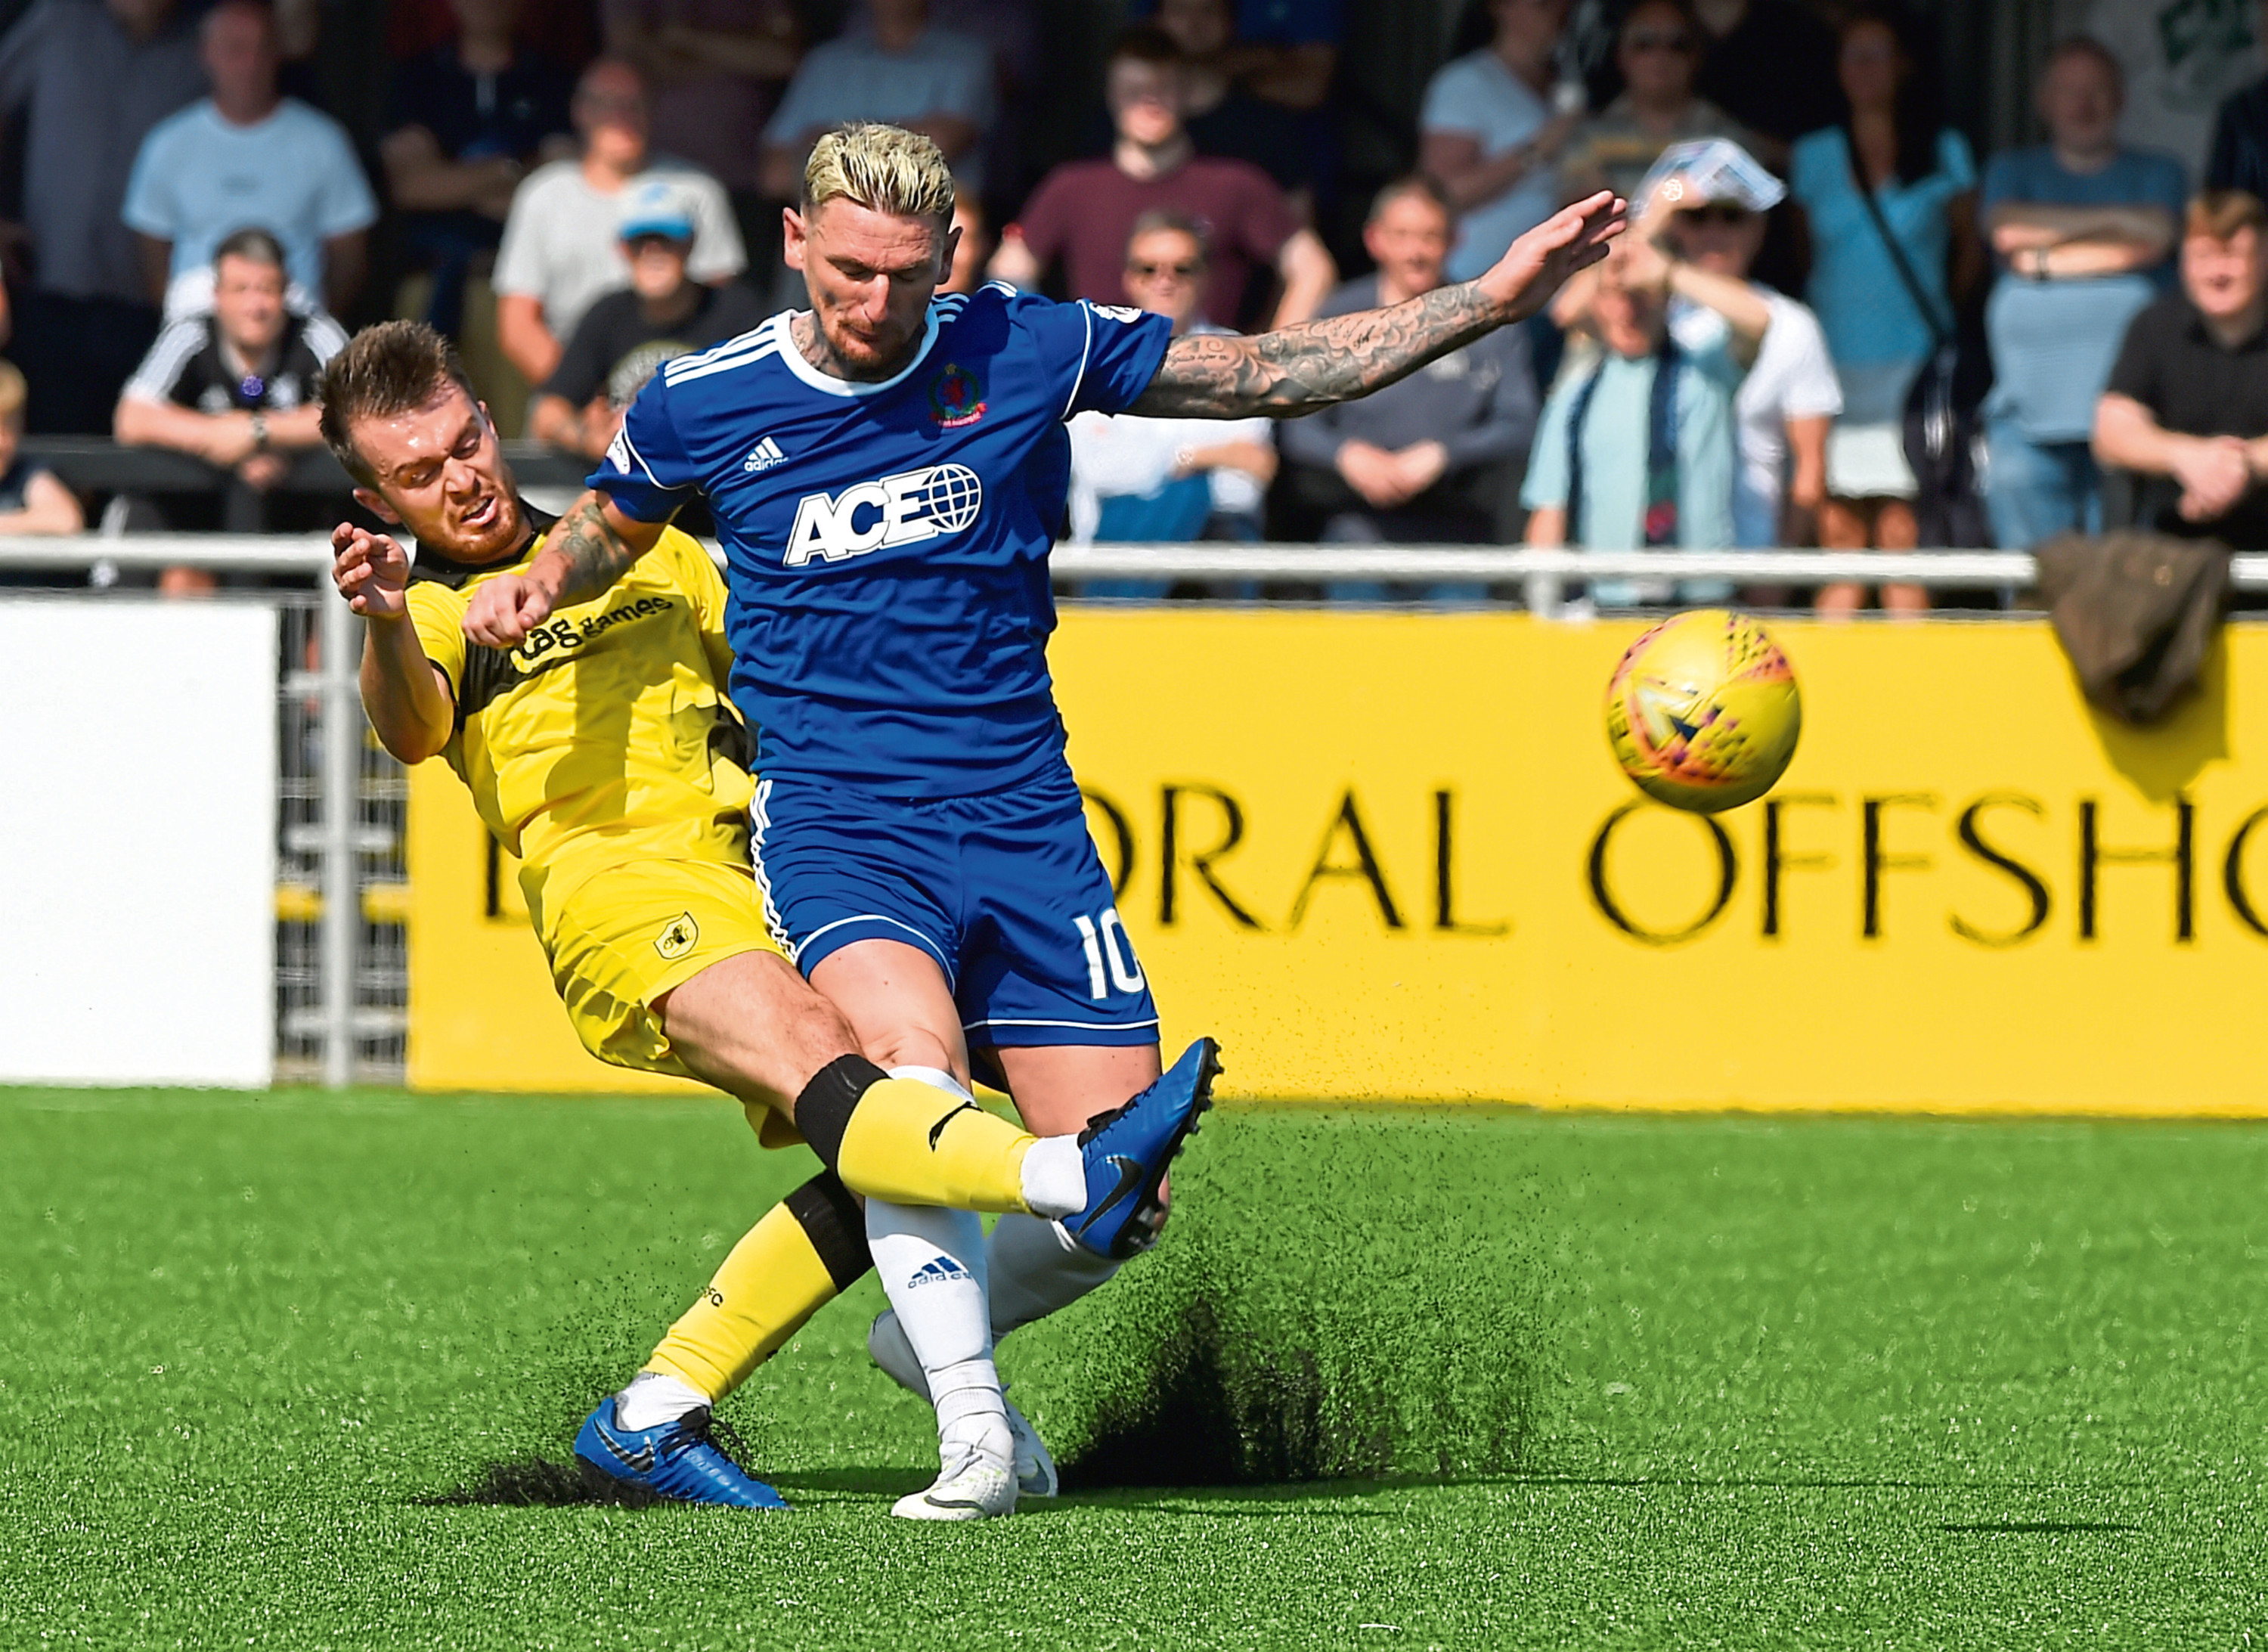 Martin Scott in action for Cove.